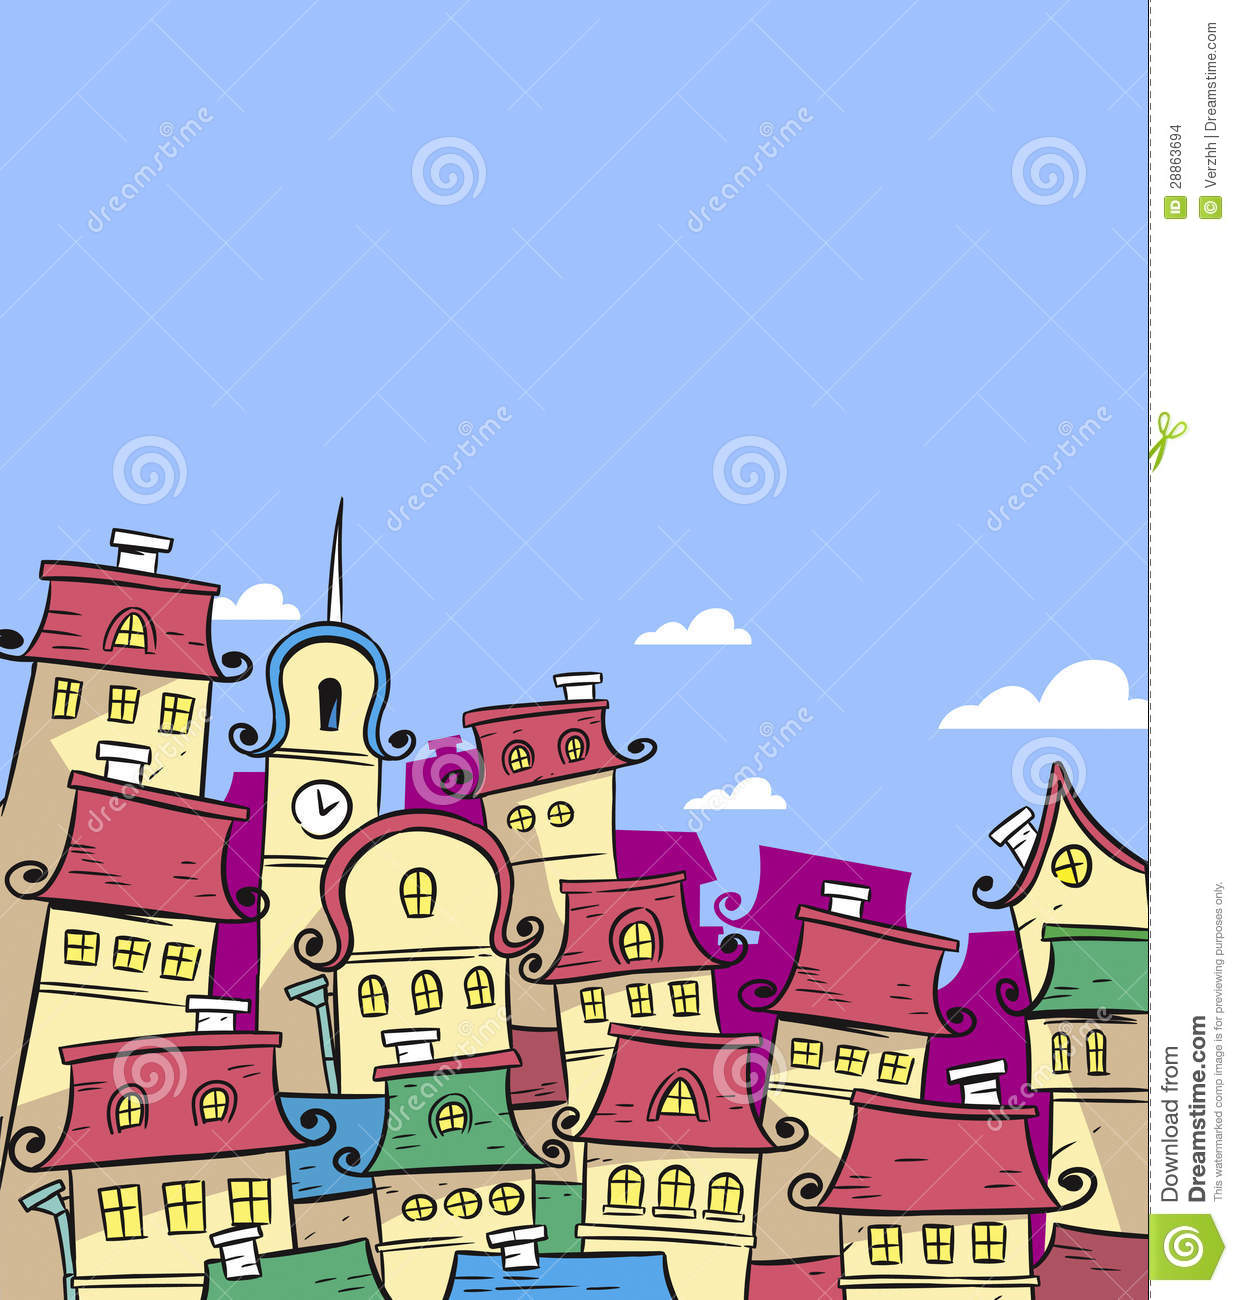 Fairytale Town Stock Vector. Illustration Of City, Tower